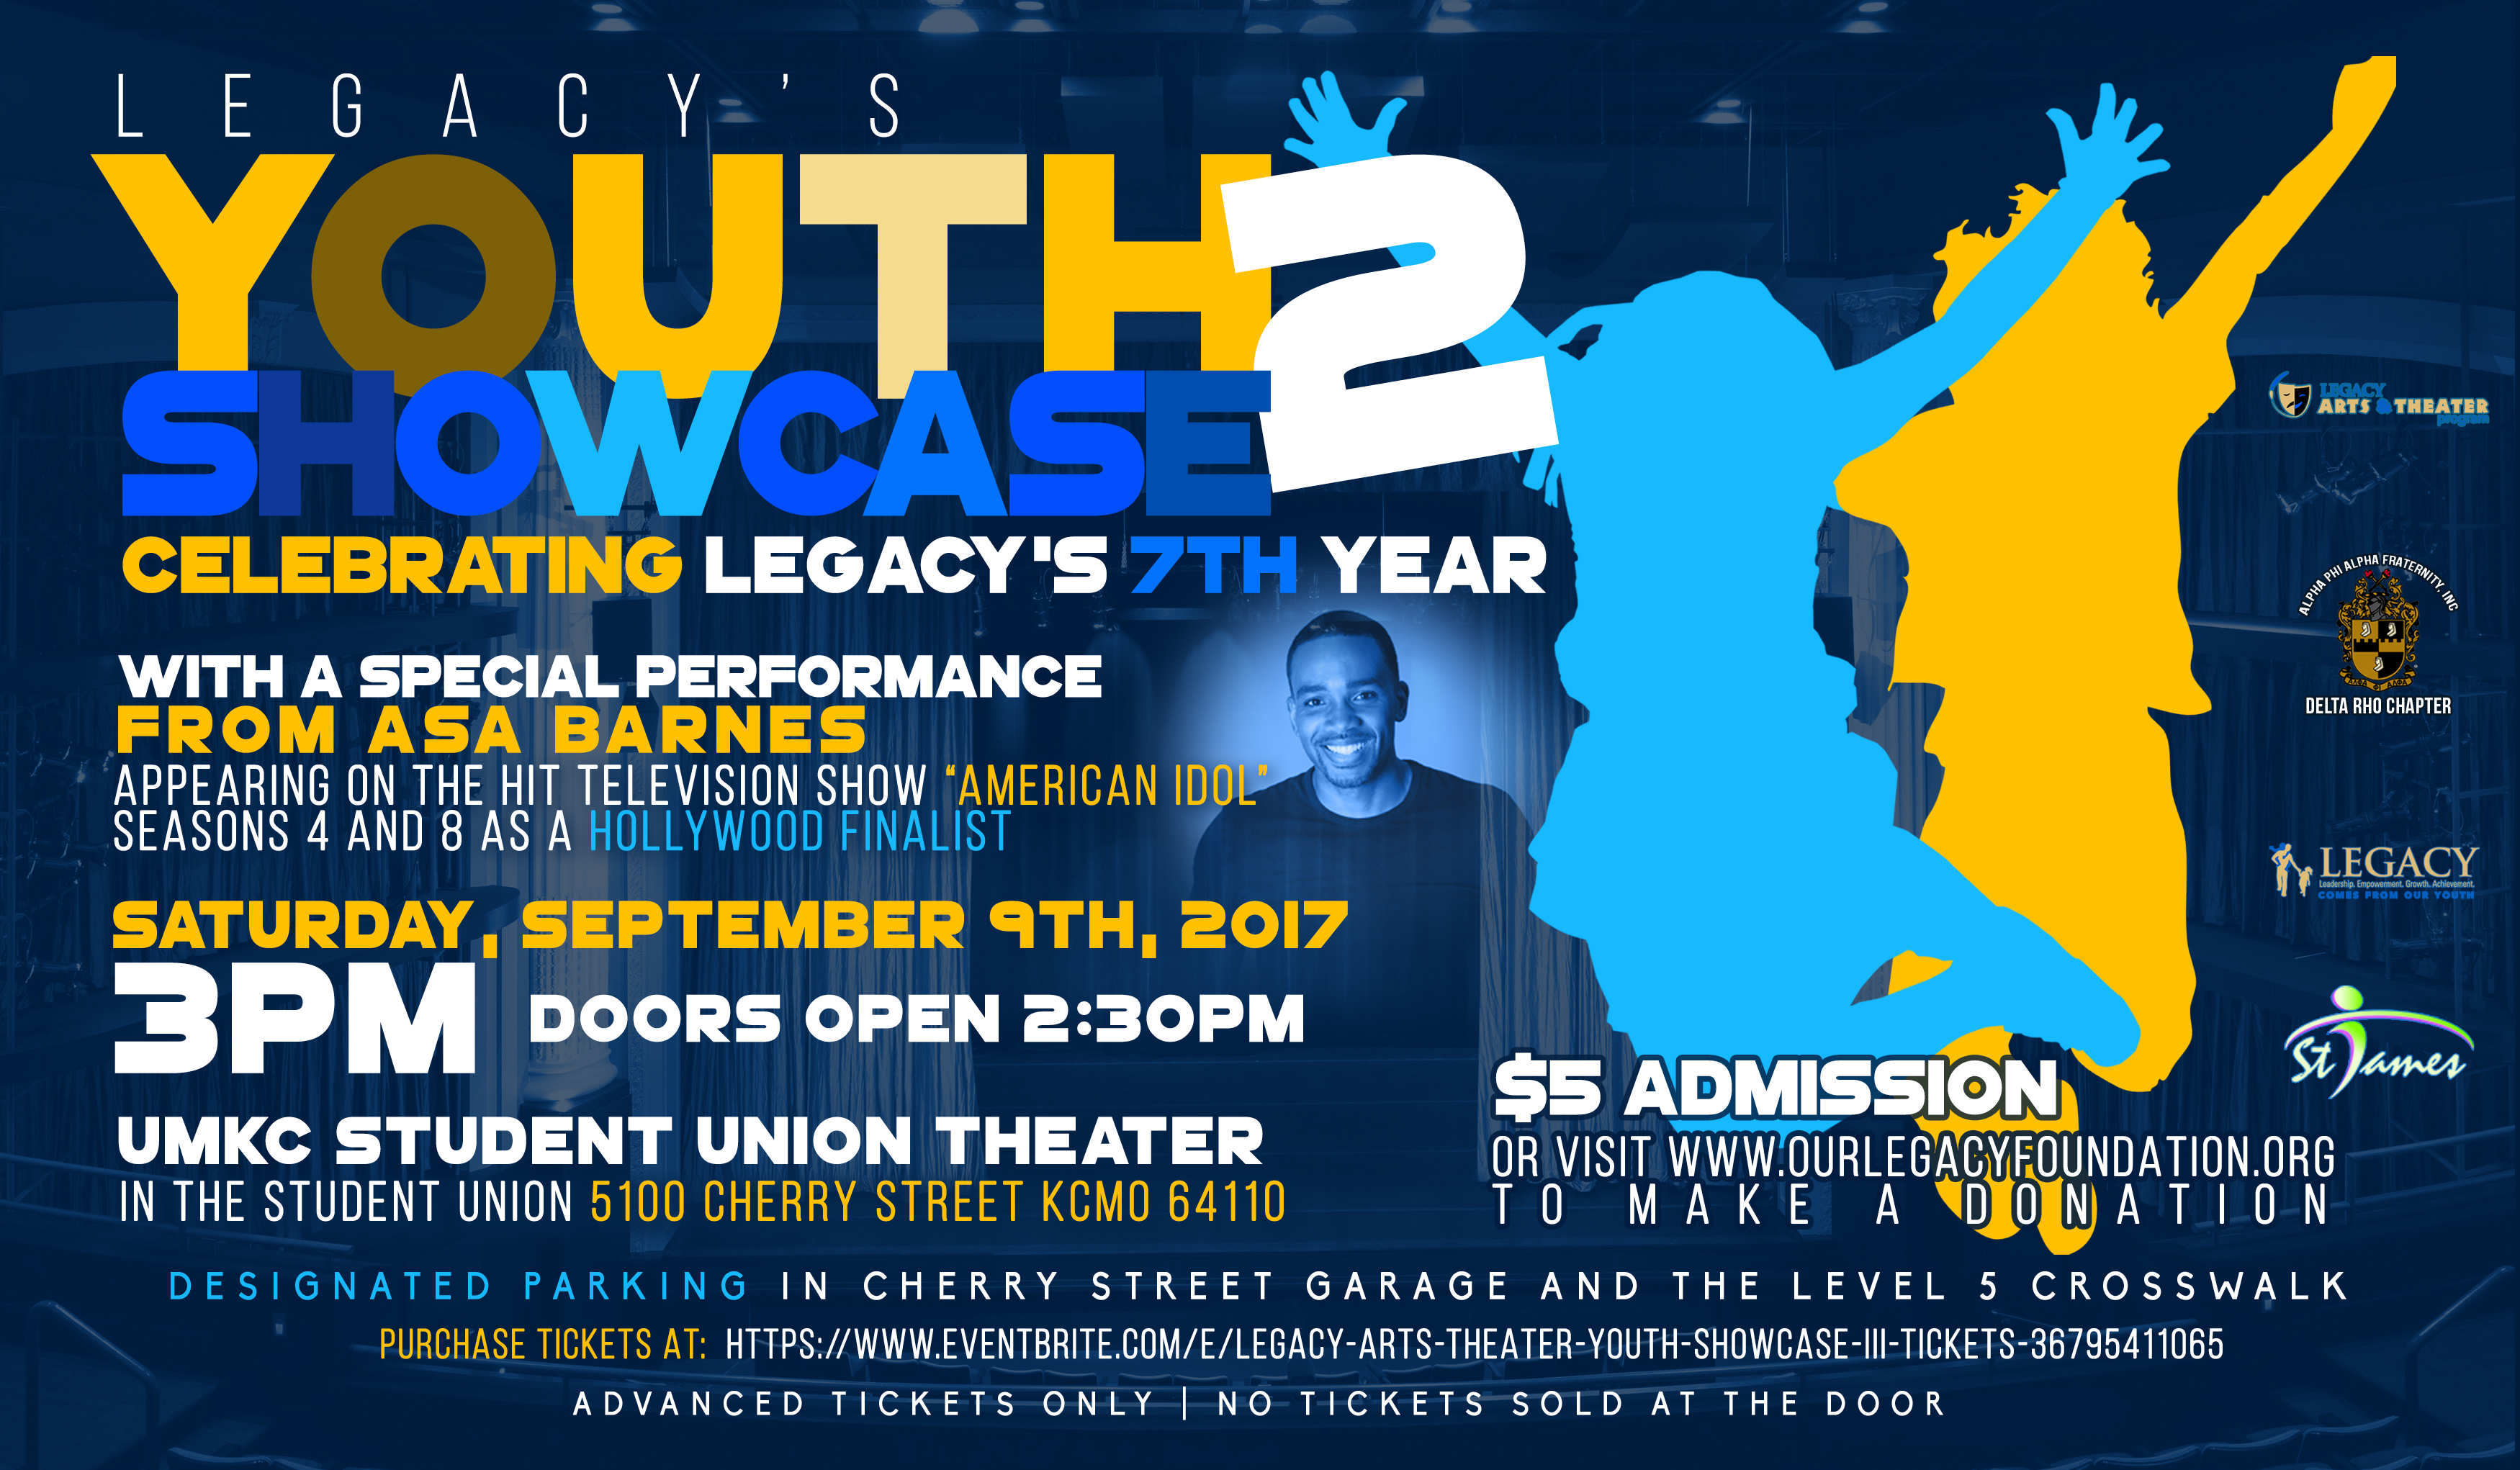 LEGACY is pleased to announce the return of our annual Arts & Theater Youth Showcase. Local youth will be showcasing their talents through song, dance and monologue. This is a major opportunity for them to take part in a stage performance.  LEGACY is celebrating our 7th year with a special performance from Asa Barnes (Appearing on the hit television show *AMERICAN IDOL* Season 4 and 8 as a Hollywood Finalist  The youth showcase is planned for Saturday September 9, 2017 at 3pm.  Purchase tickets HERE.